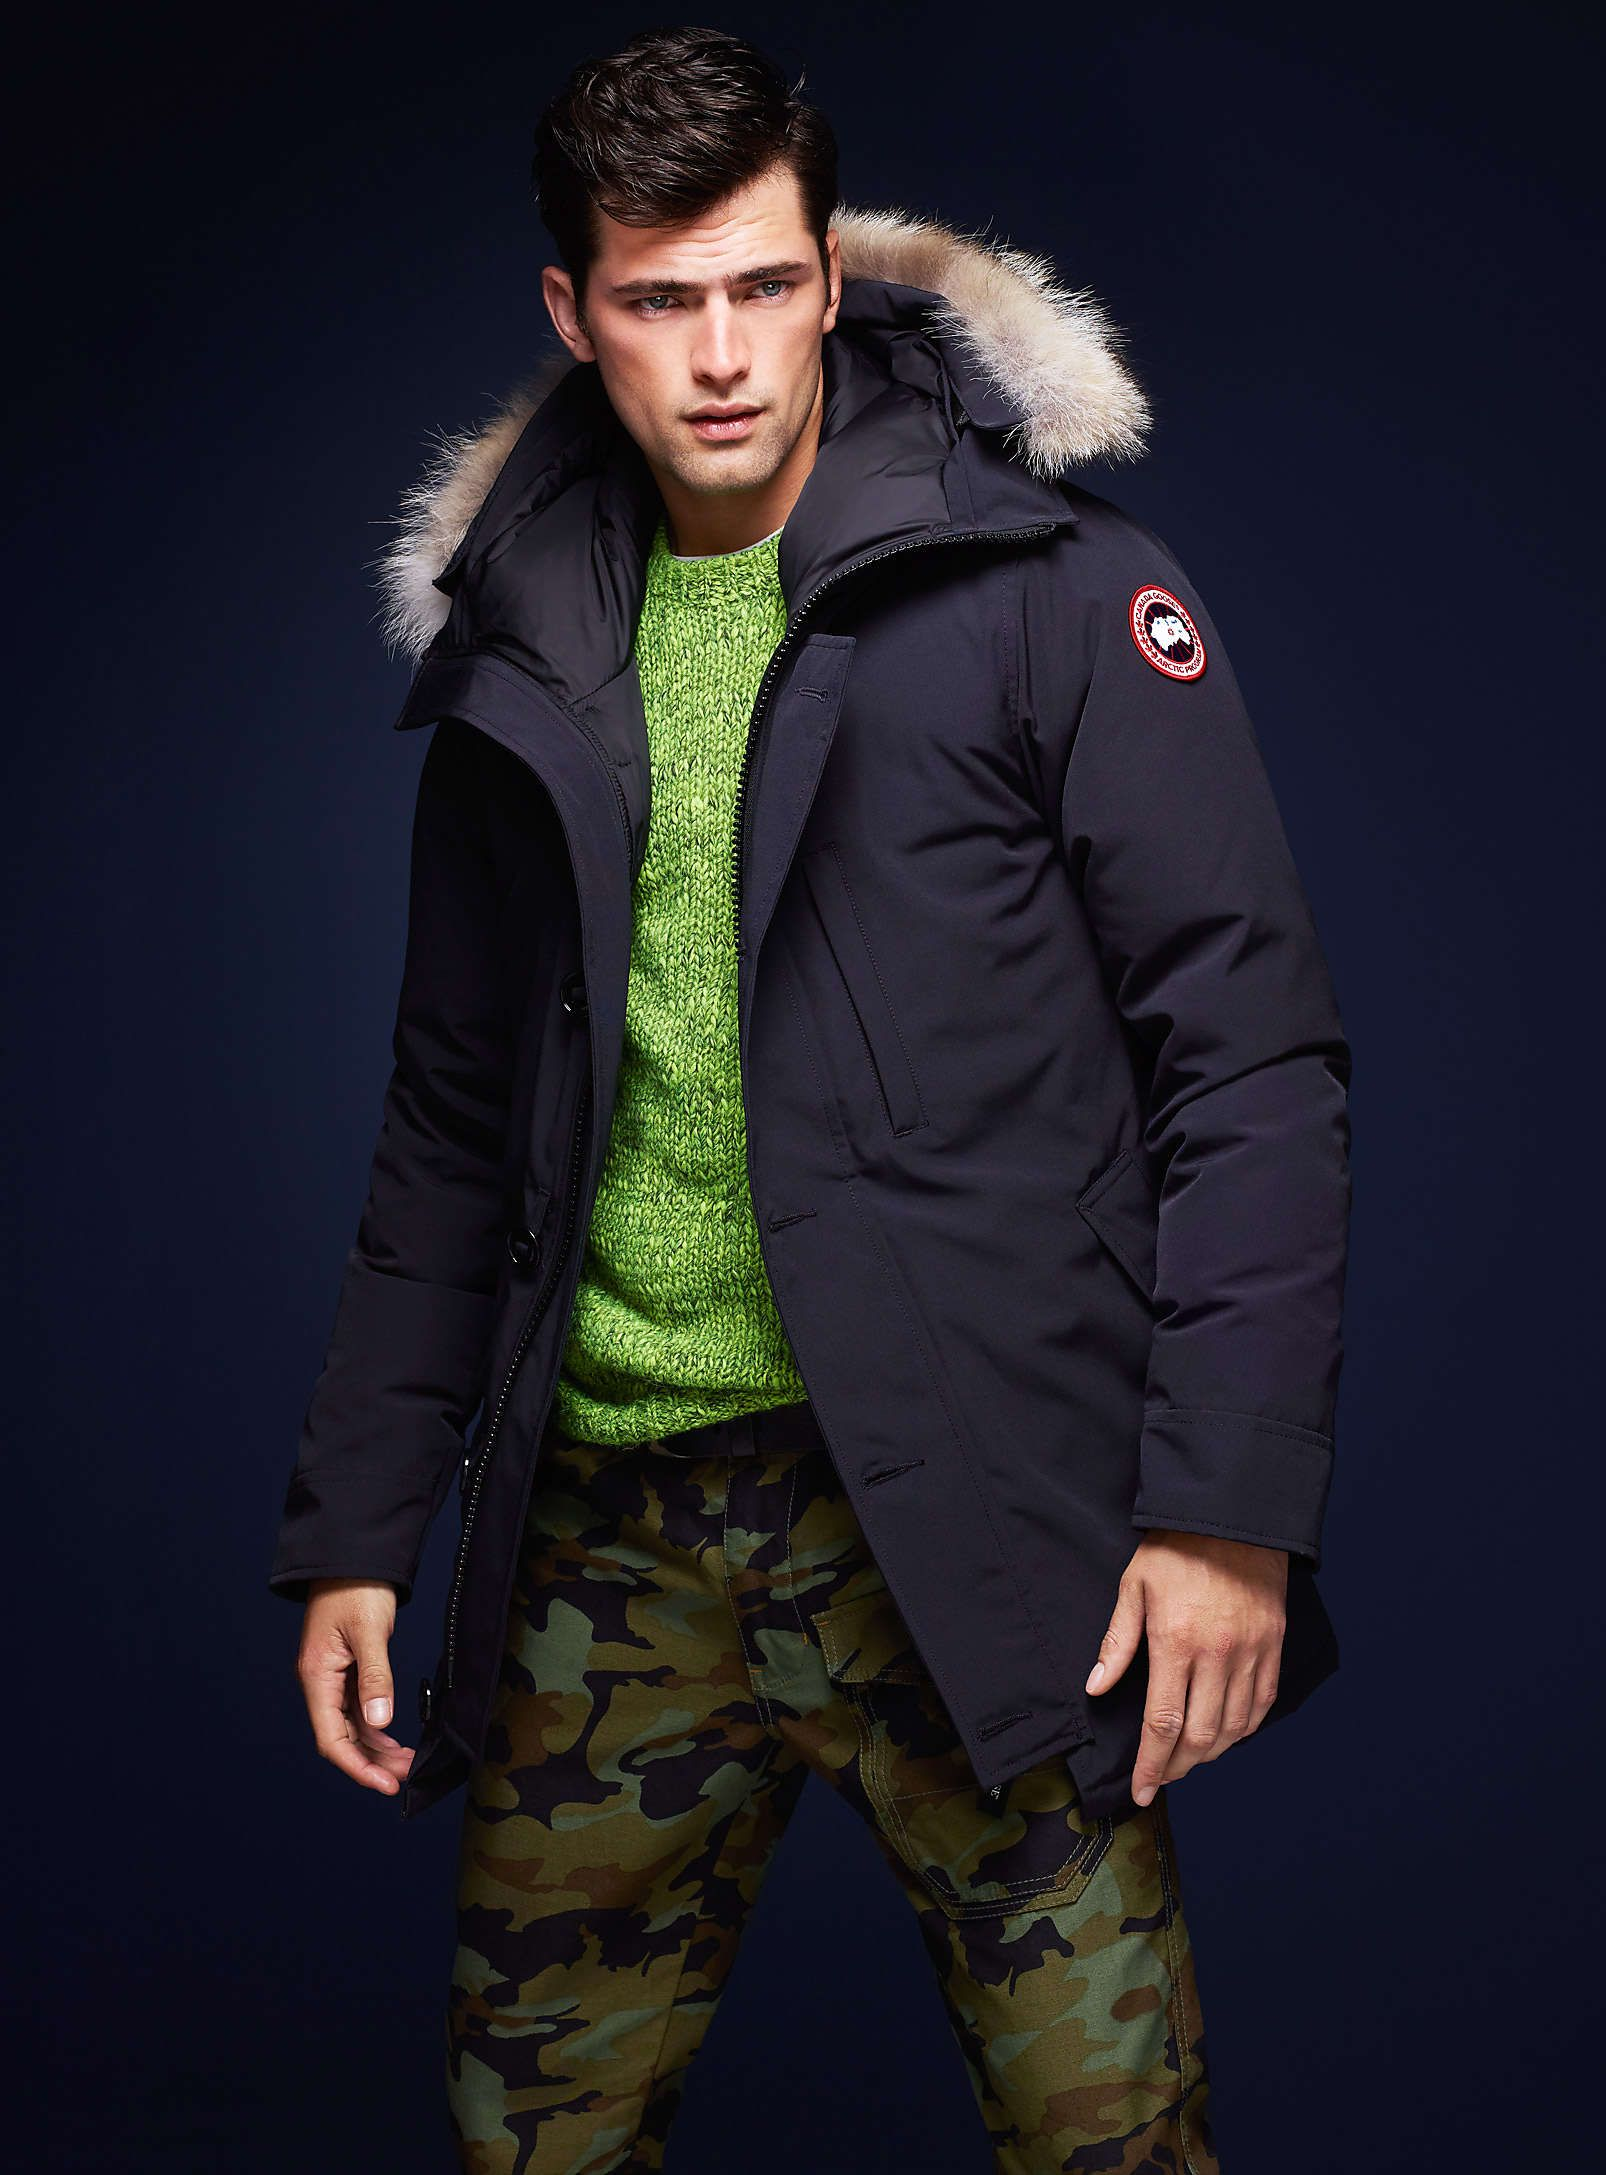 canada goose simons seanopry men 39 s fashion. Black Bedroom Furniture Sets. Home Design Ideas